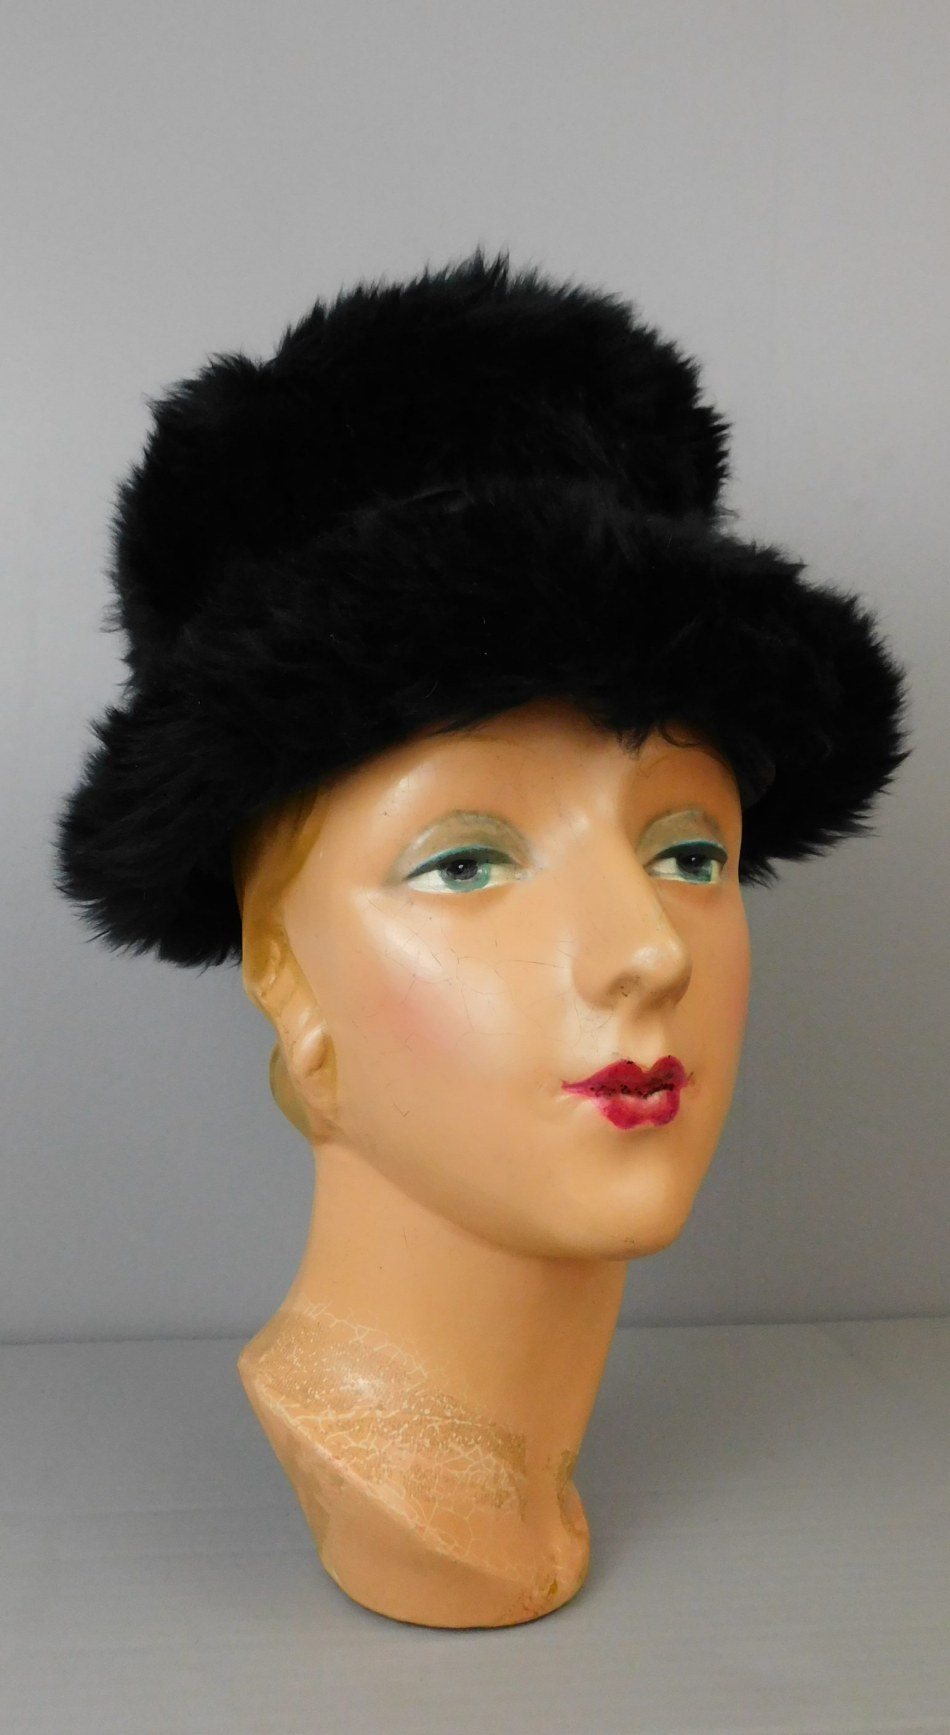 Vintage Thick Black Fur Hat with Satin top and band, 1960s, 21 to 22 inch head